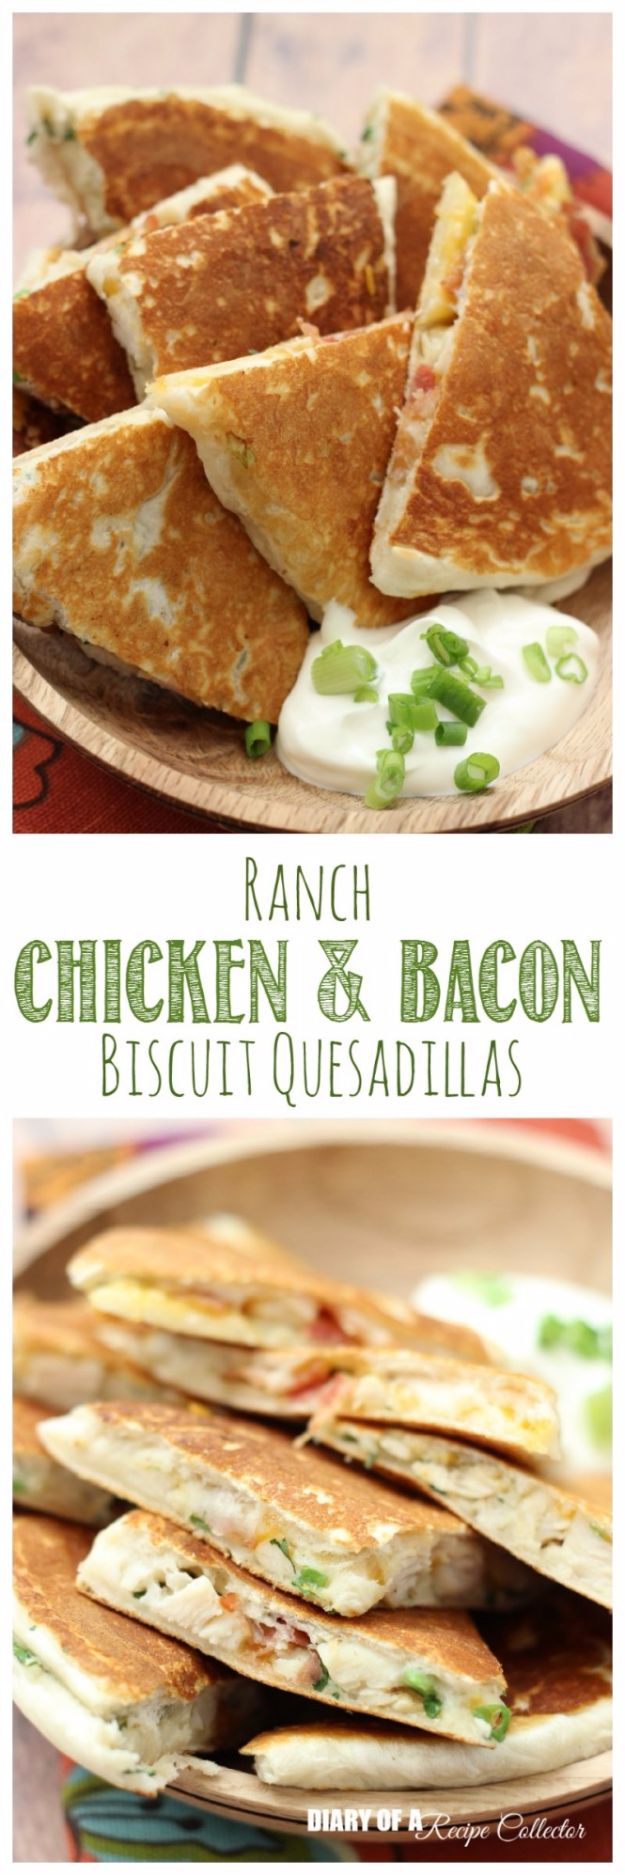 Best Canned Biscuit Recipes - Ranch Chicken & Bacon Biscuit Quesadillas - Cool DIY Recipe Ideas You Can Make With A Can of Biscuits - Easy Breakfast, Lunch, Dinner and Desserts You Can Make From Pillsbury Pull Apart Biscuits - Garlic, Sour Cream, Ground Beef, Sweet and Savory, Ideas with Cheese - Delicious Meals on A Budget With Step by Step Tutorials